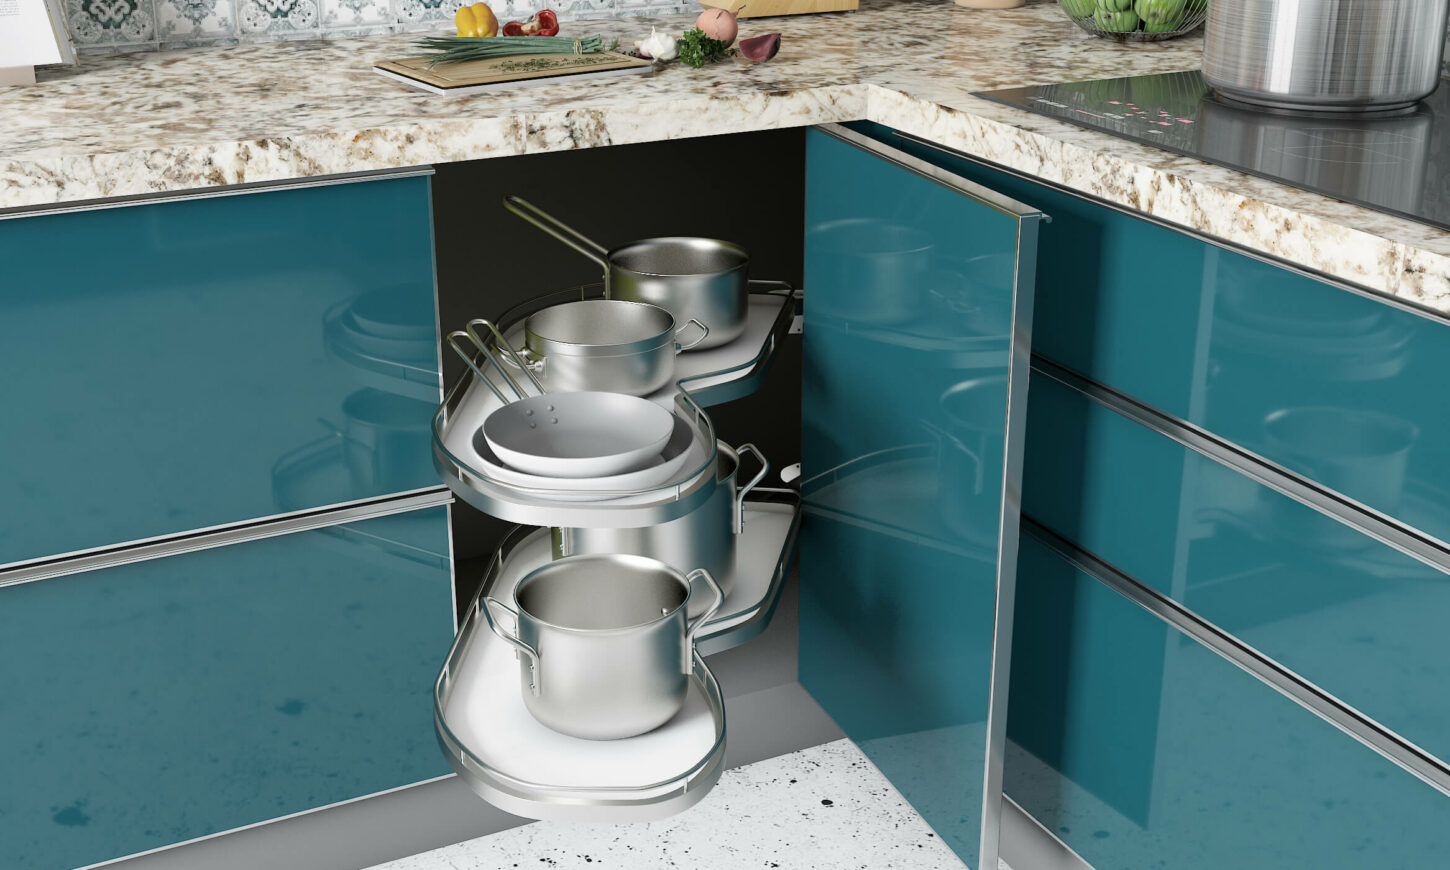 Two toned modern classic kitchen in blue and white with magic corner for smart organization